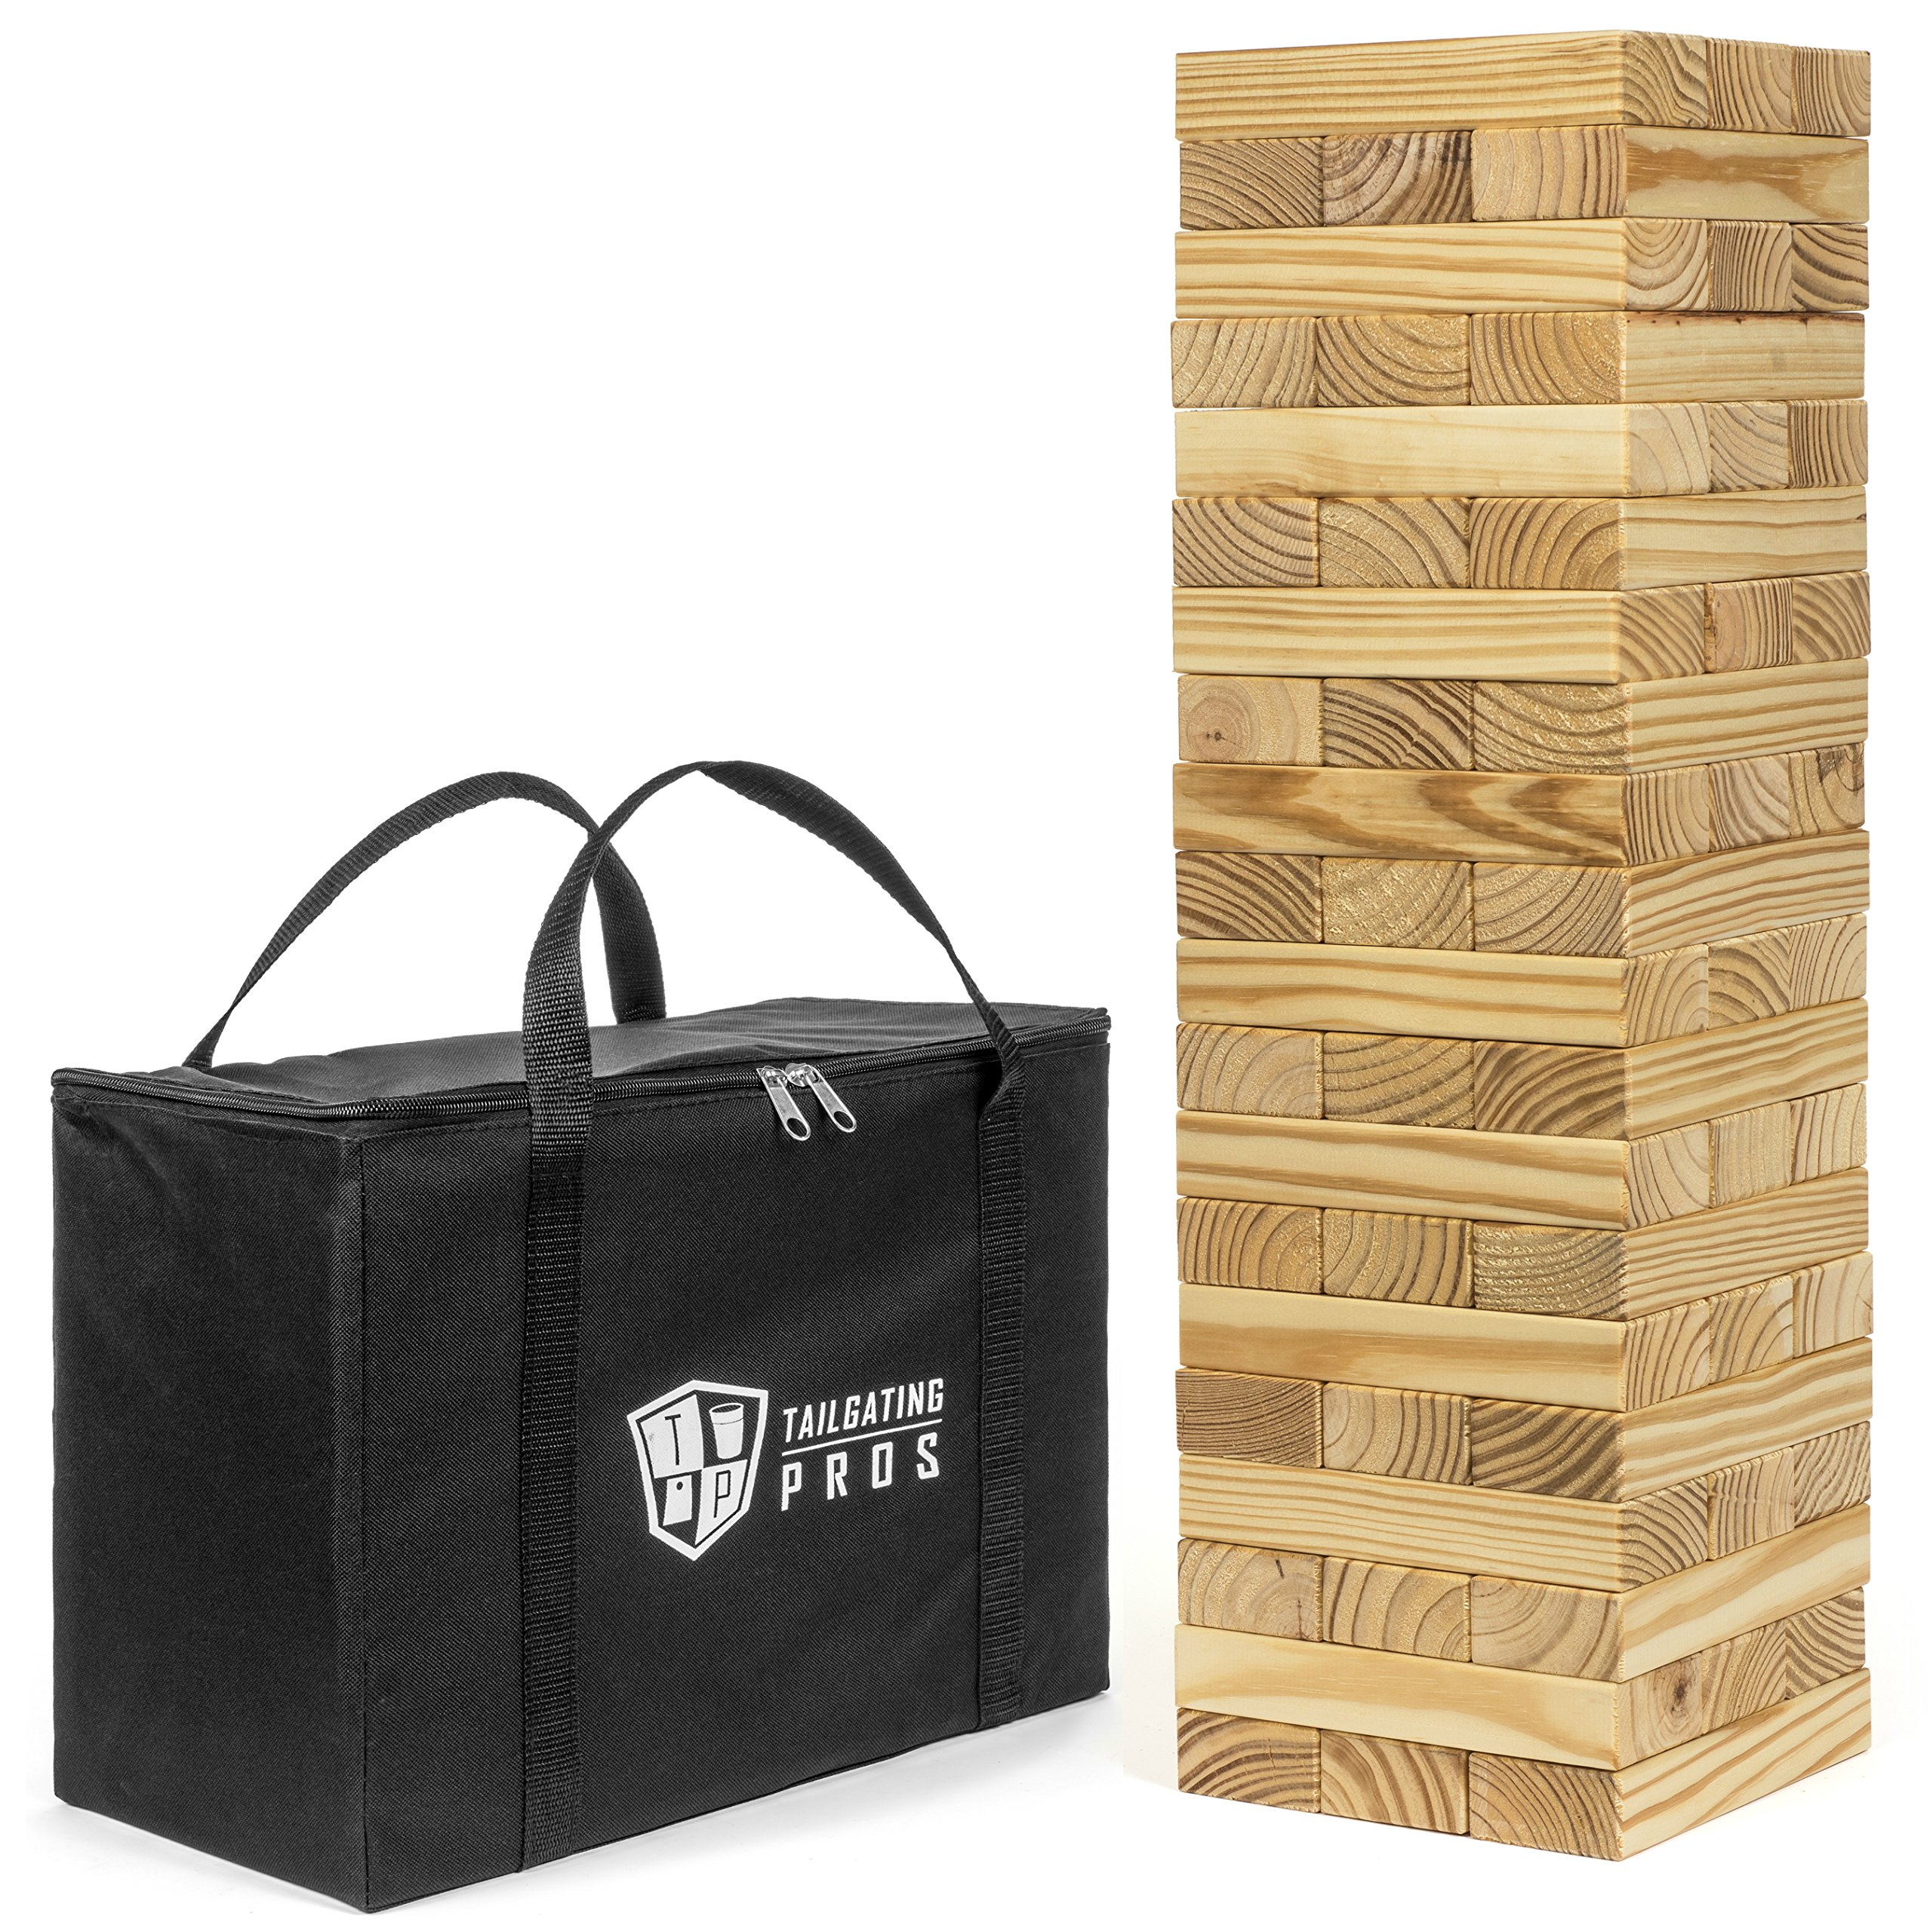 Giant Toppling Timbers with Carrying Case